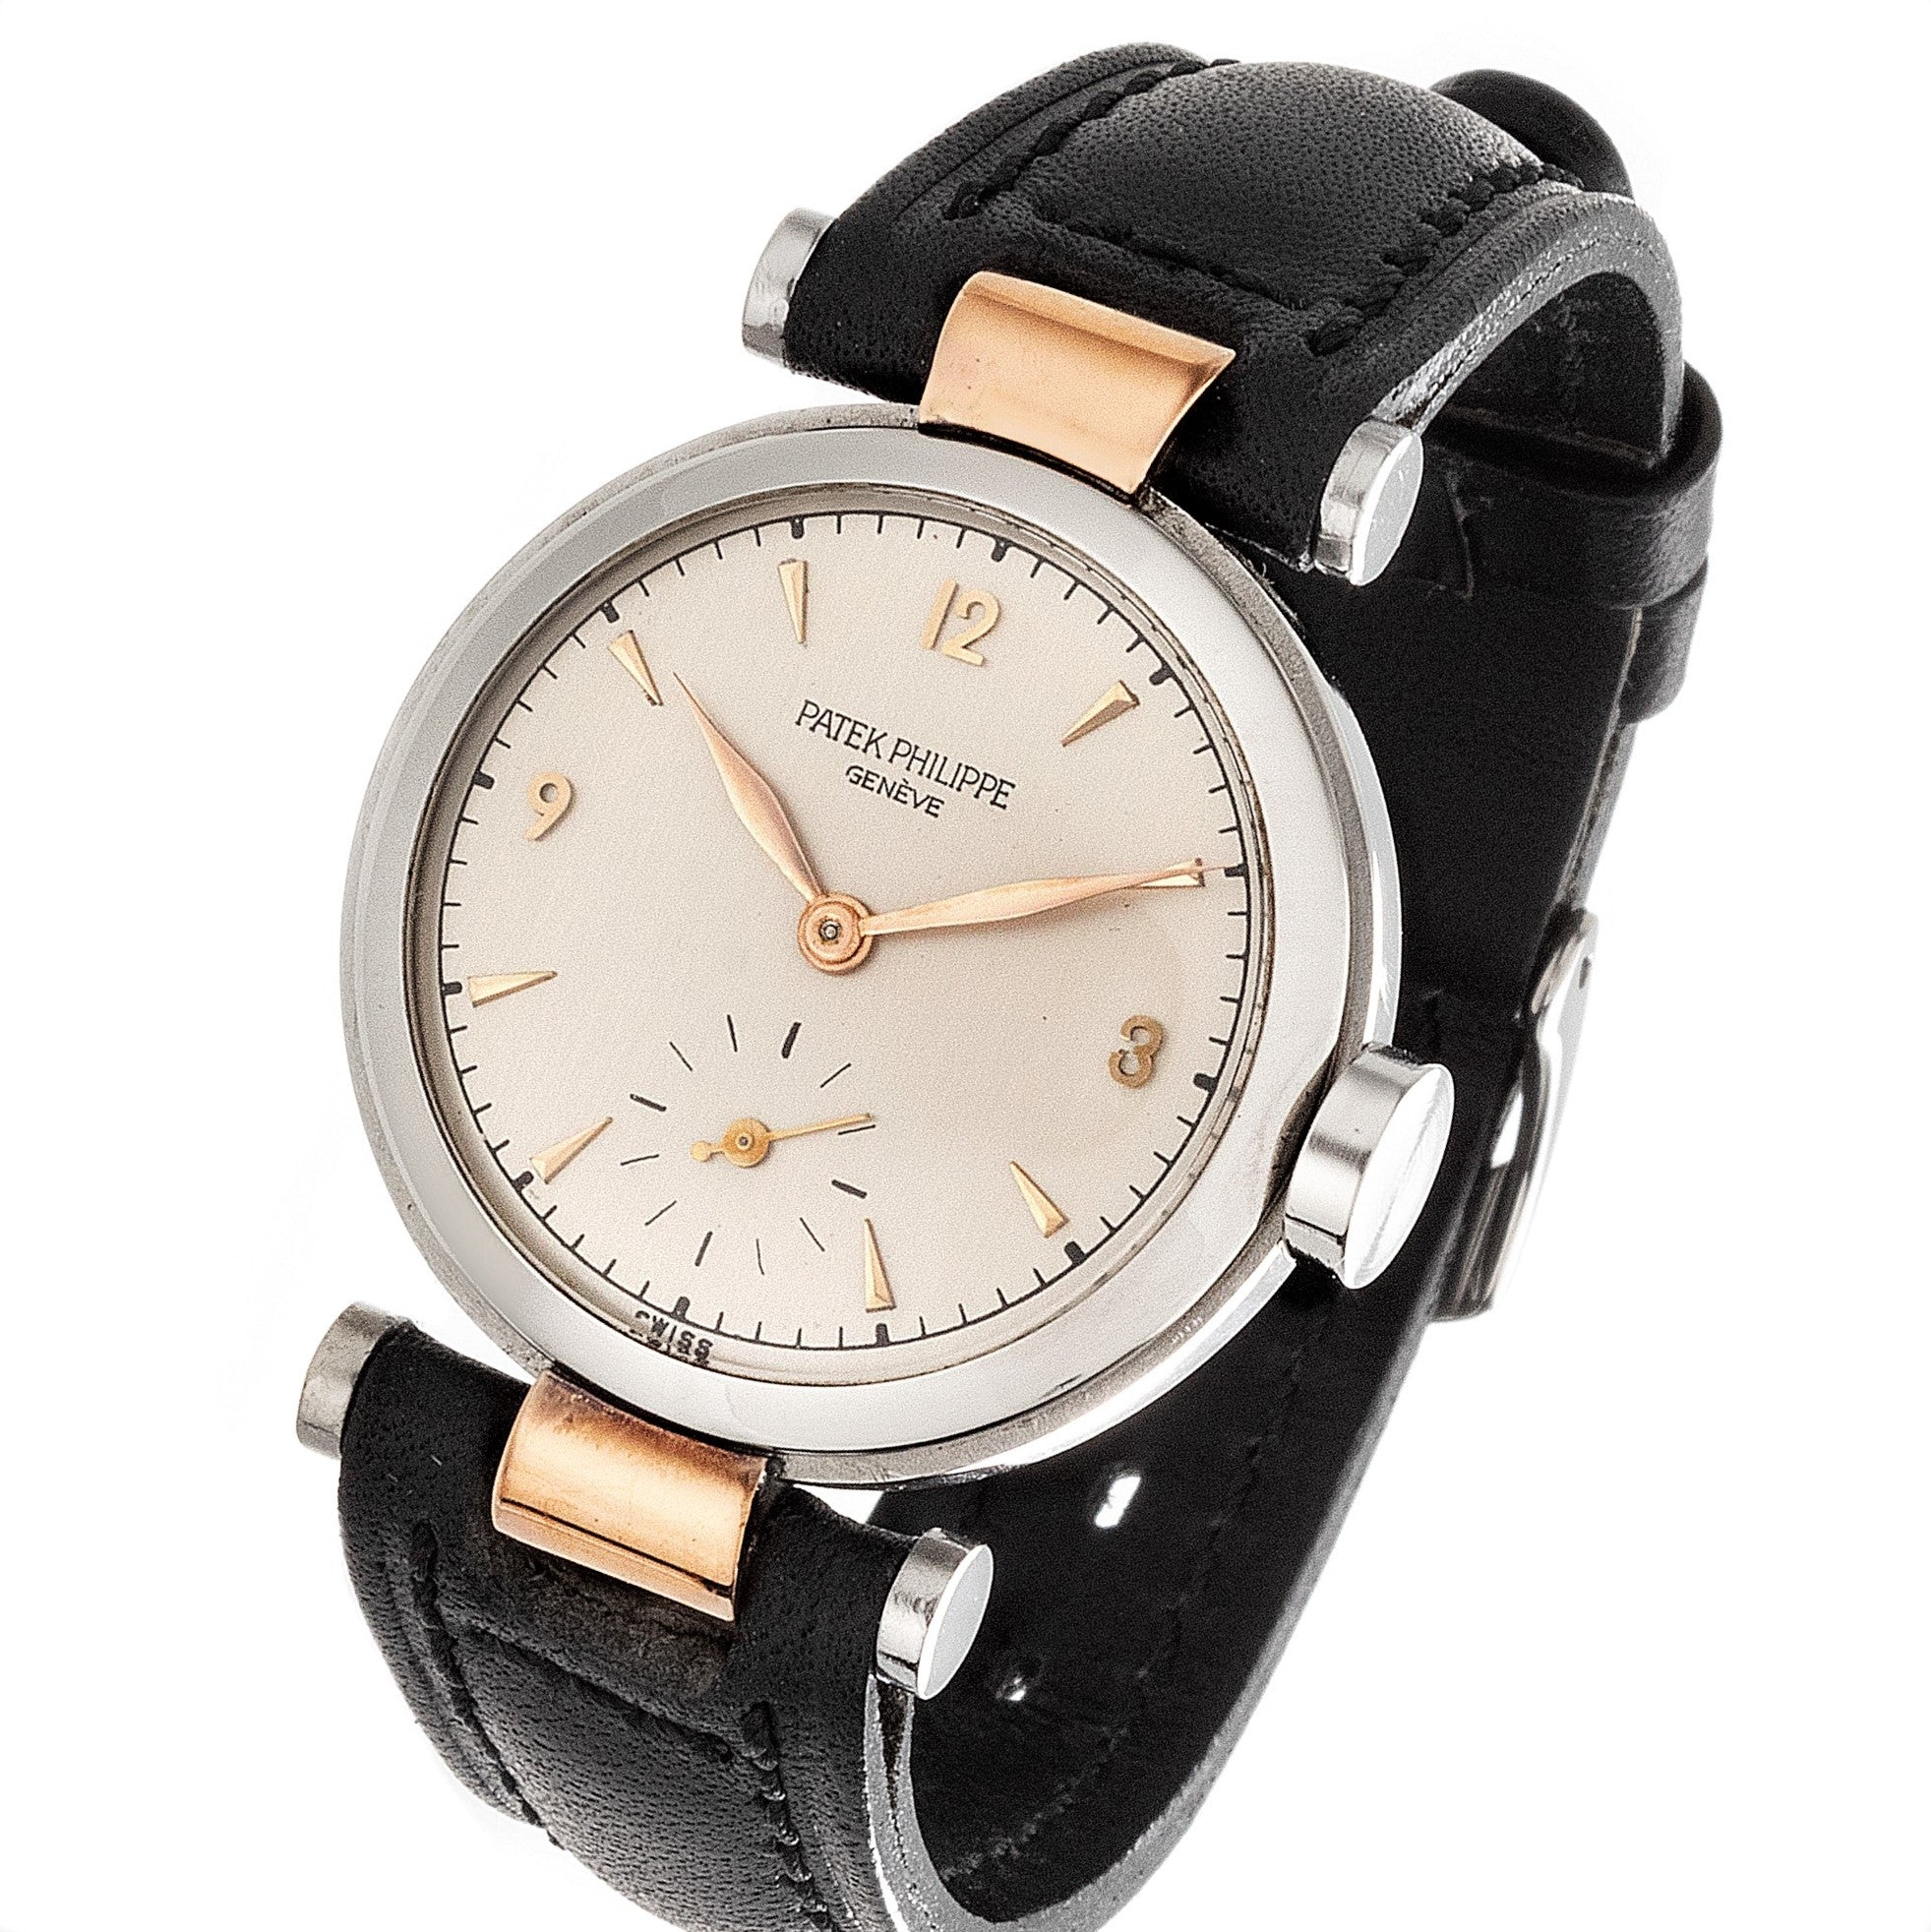 Patek Philippe 453AR Stainless Steel and Rose Gold Calatrava Watch